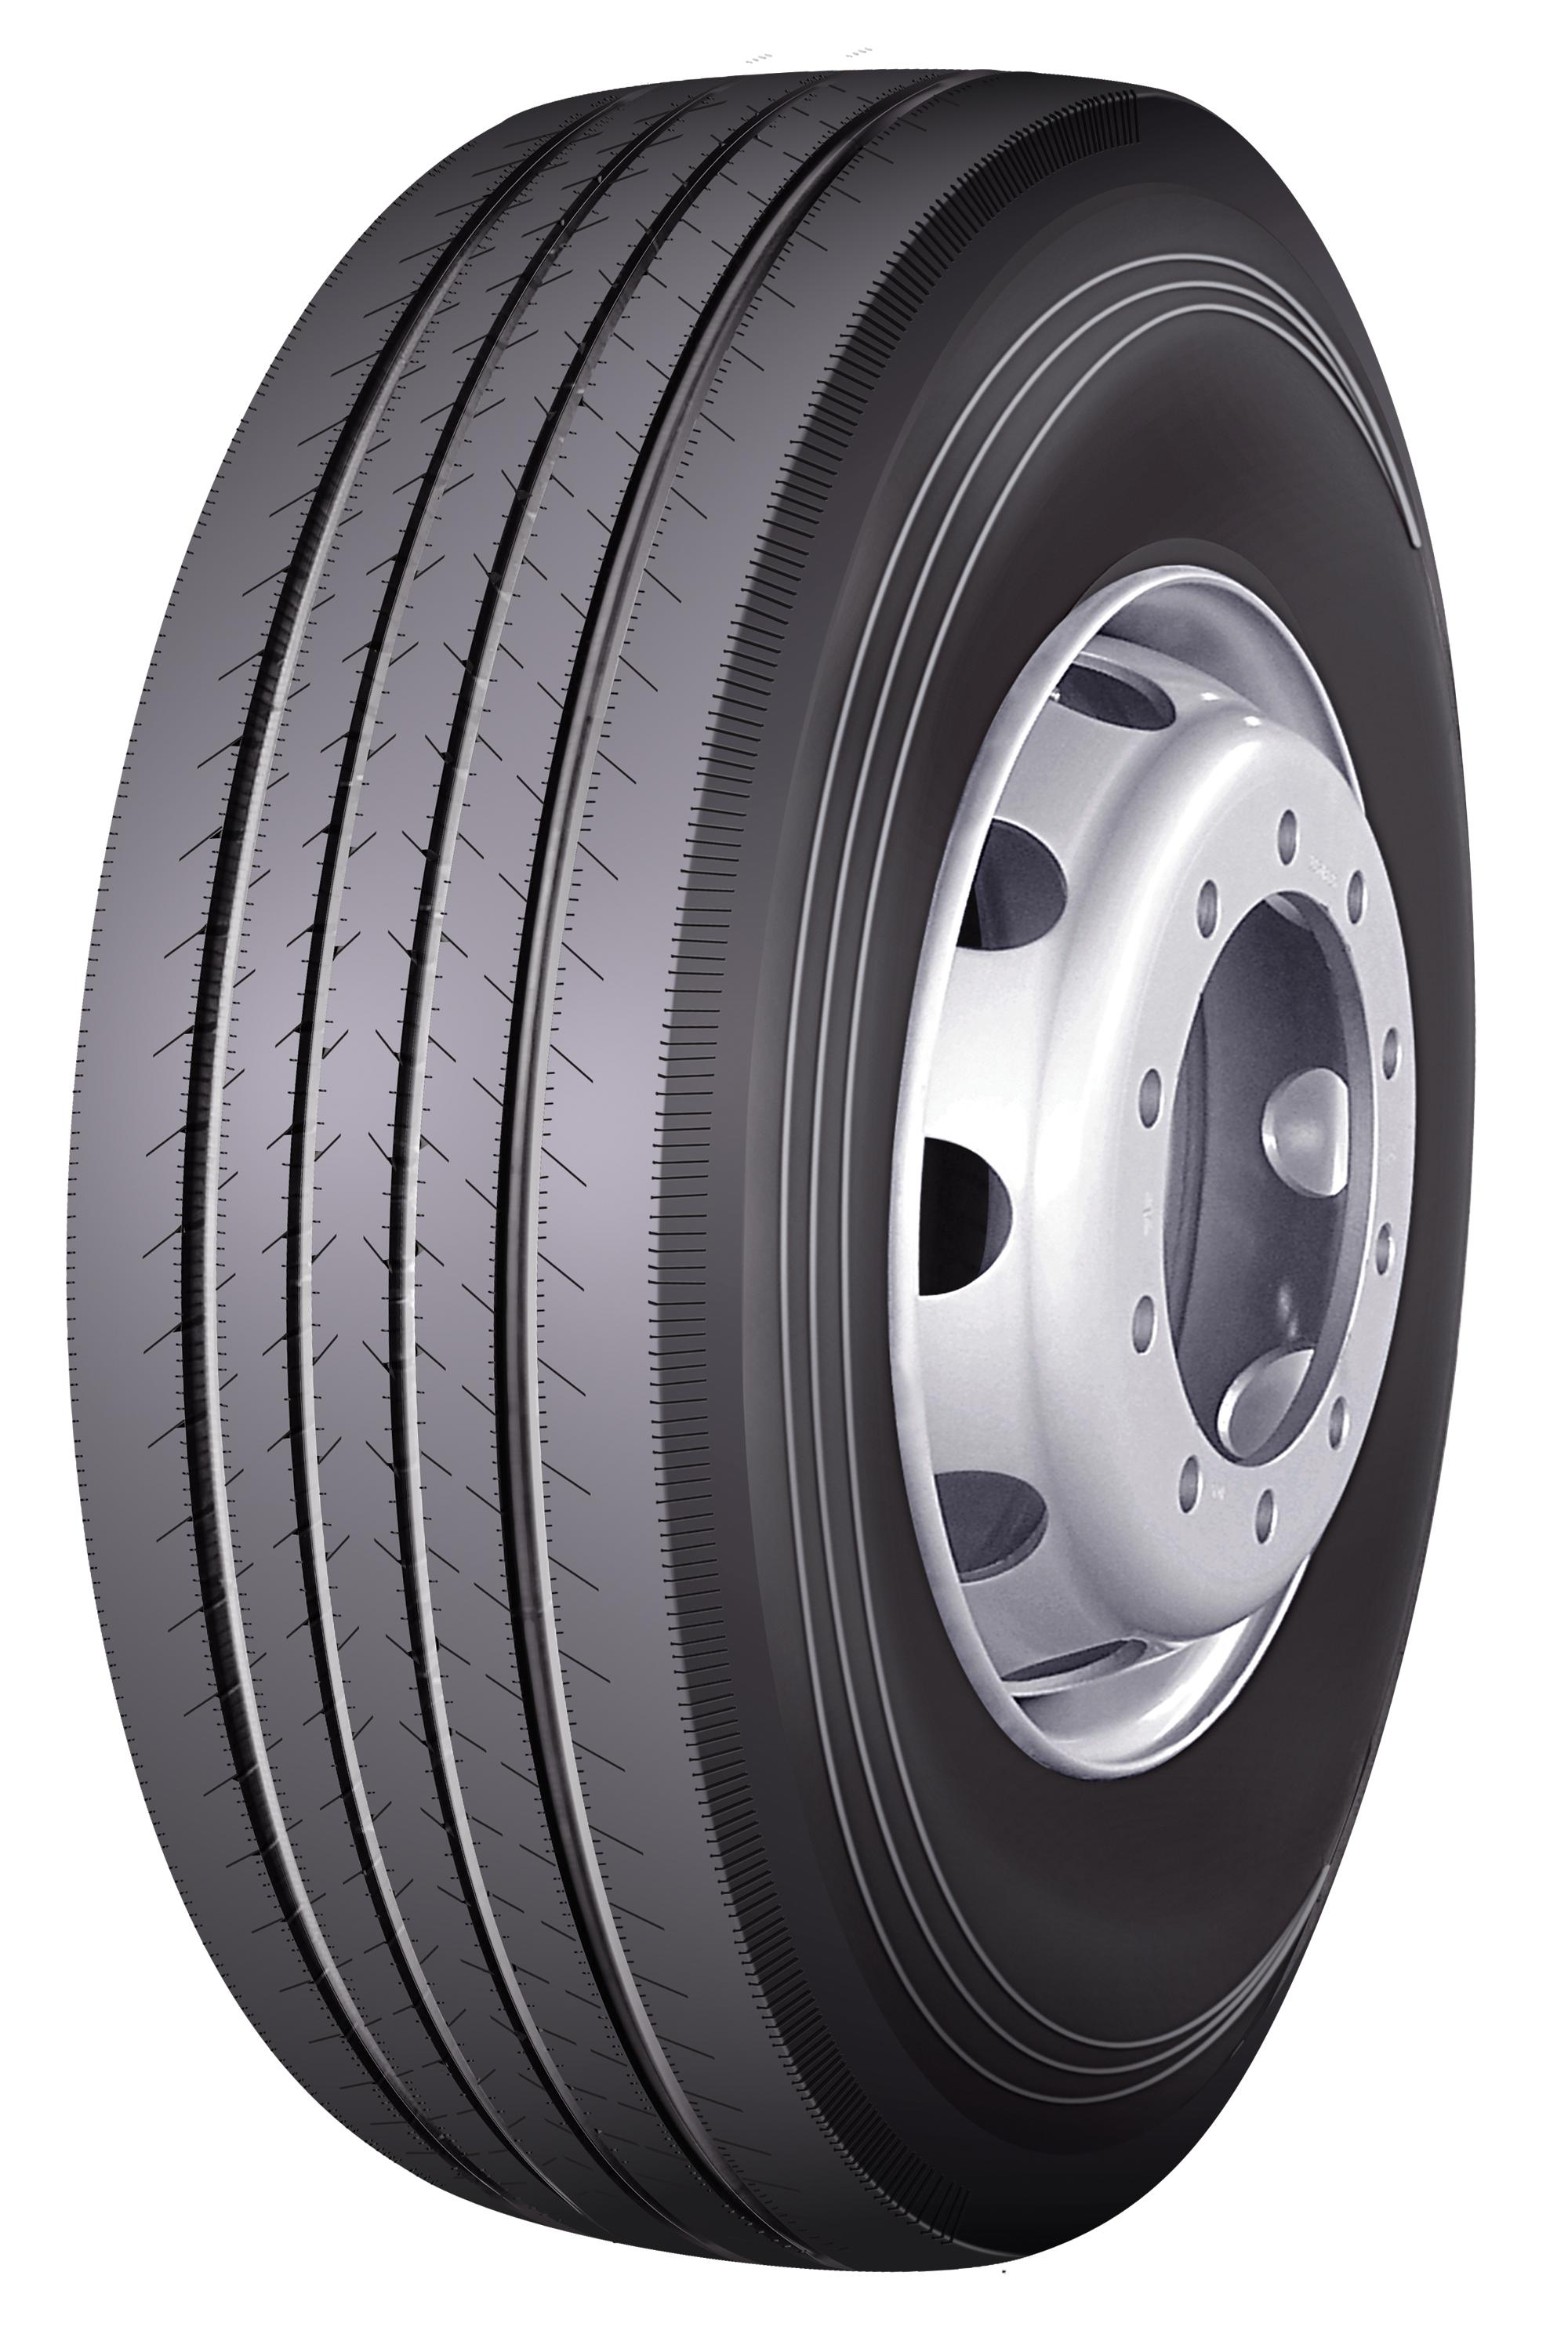 LM117 ALL STEEL RADIAL TRUCK AND BUS TYRES